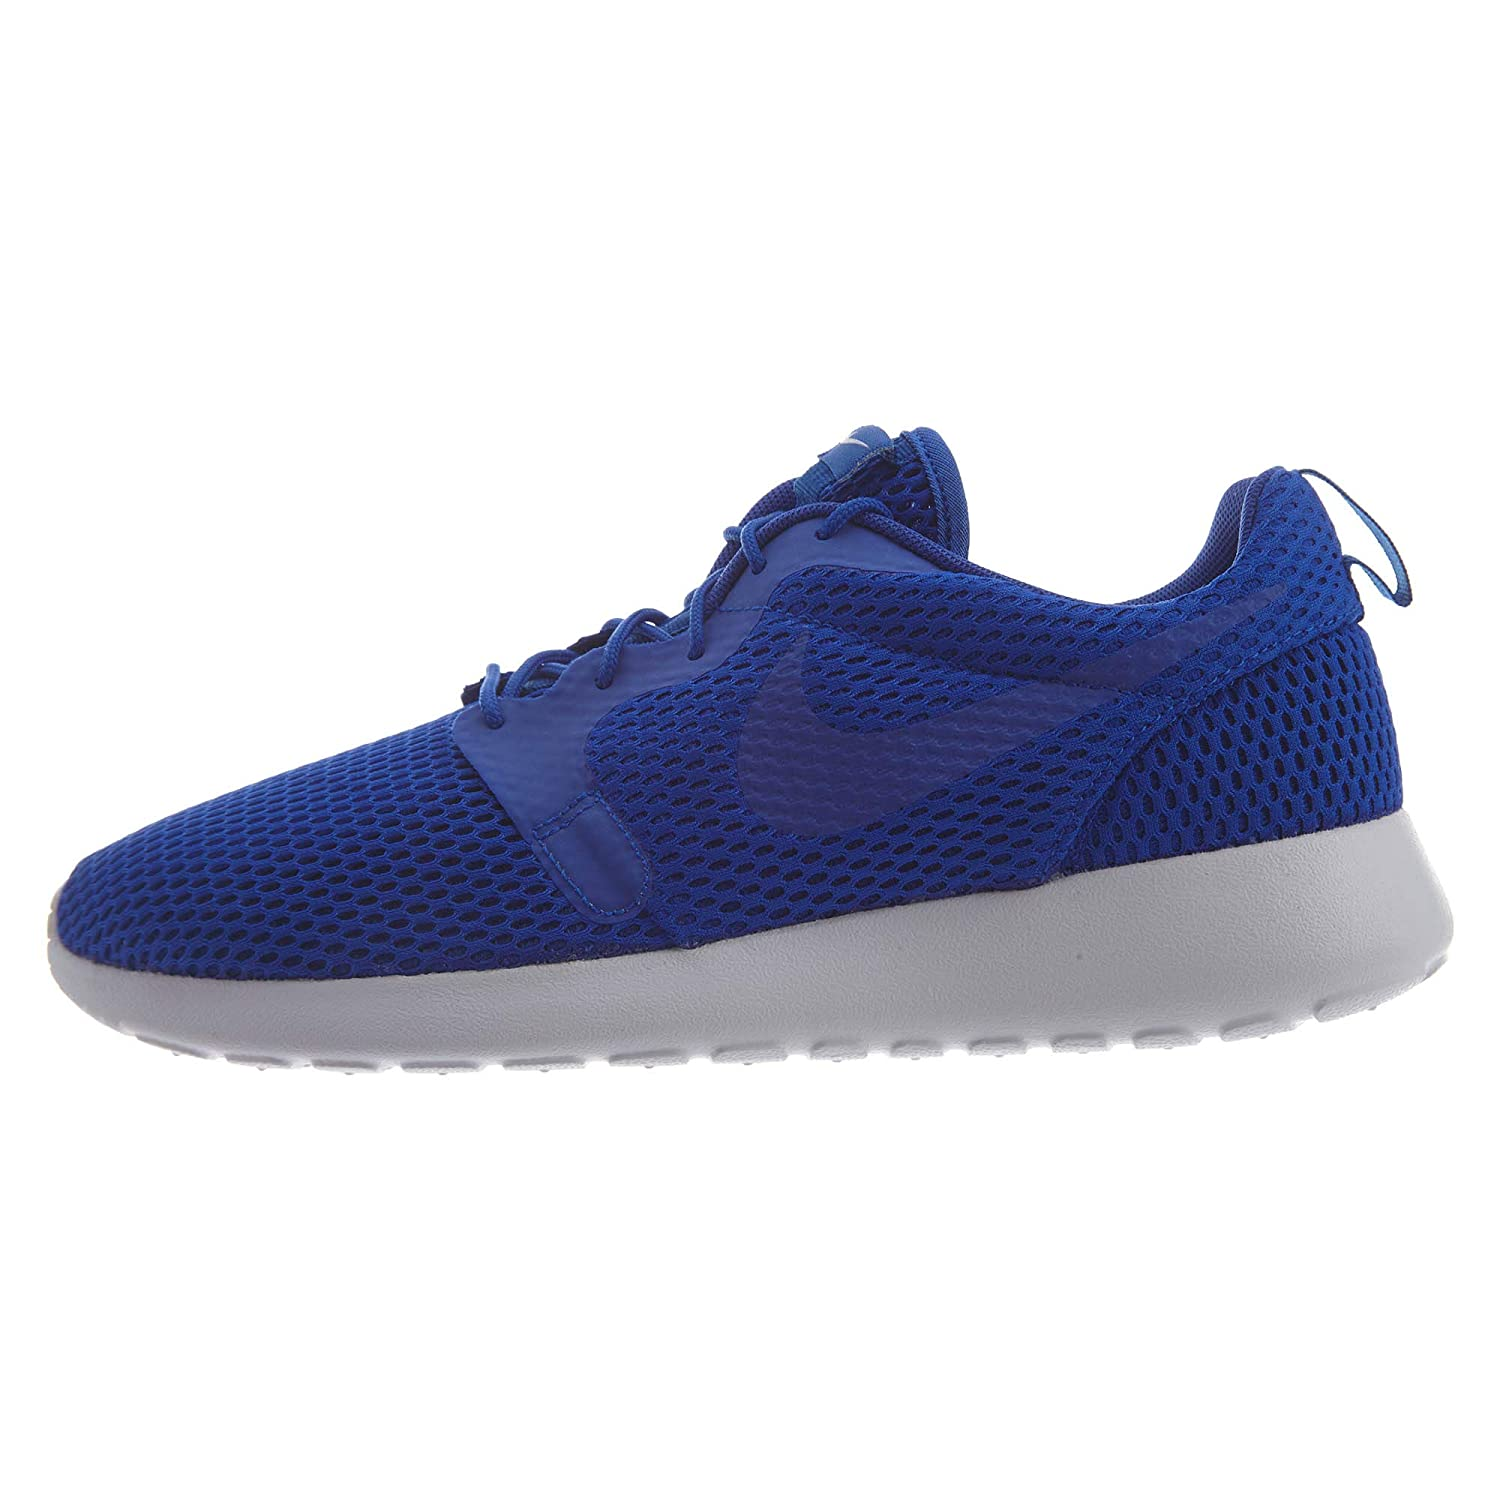 Nike Roshe One Hyp BR Men US 9.5 Blue Running Shoe: Buy